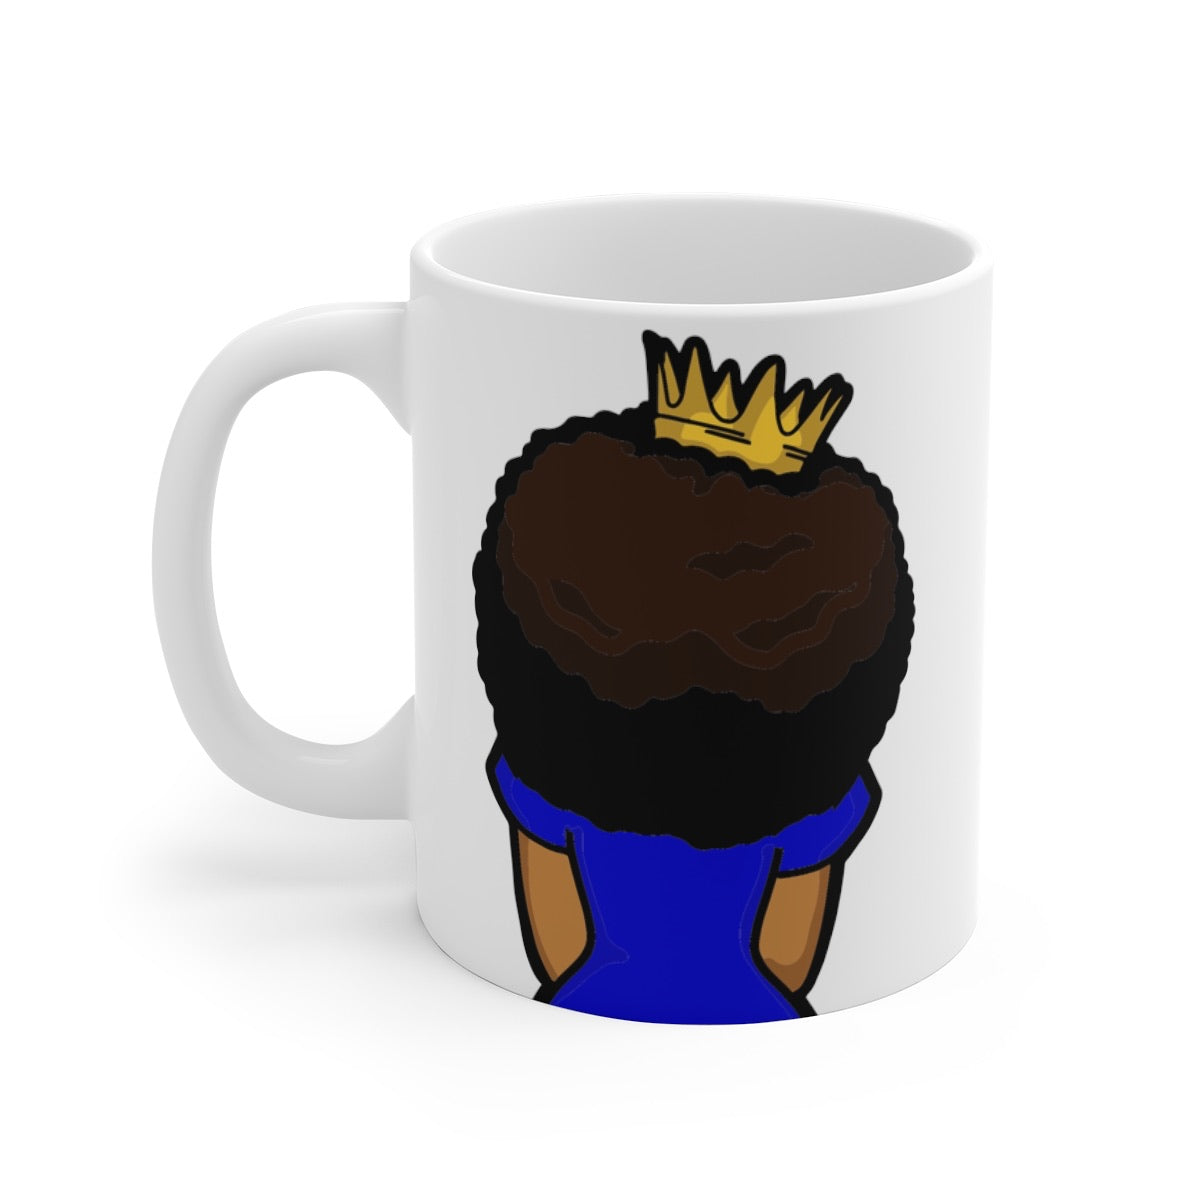 Rocking The Crown Mug